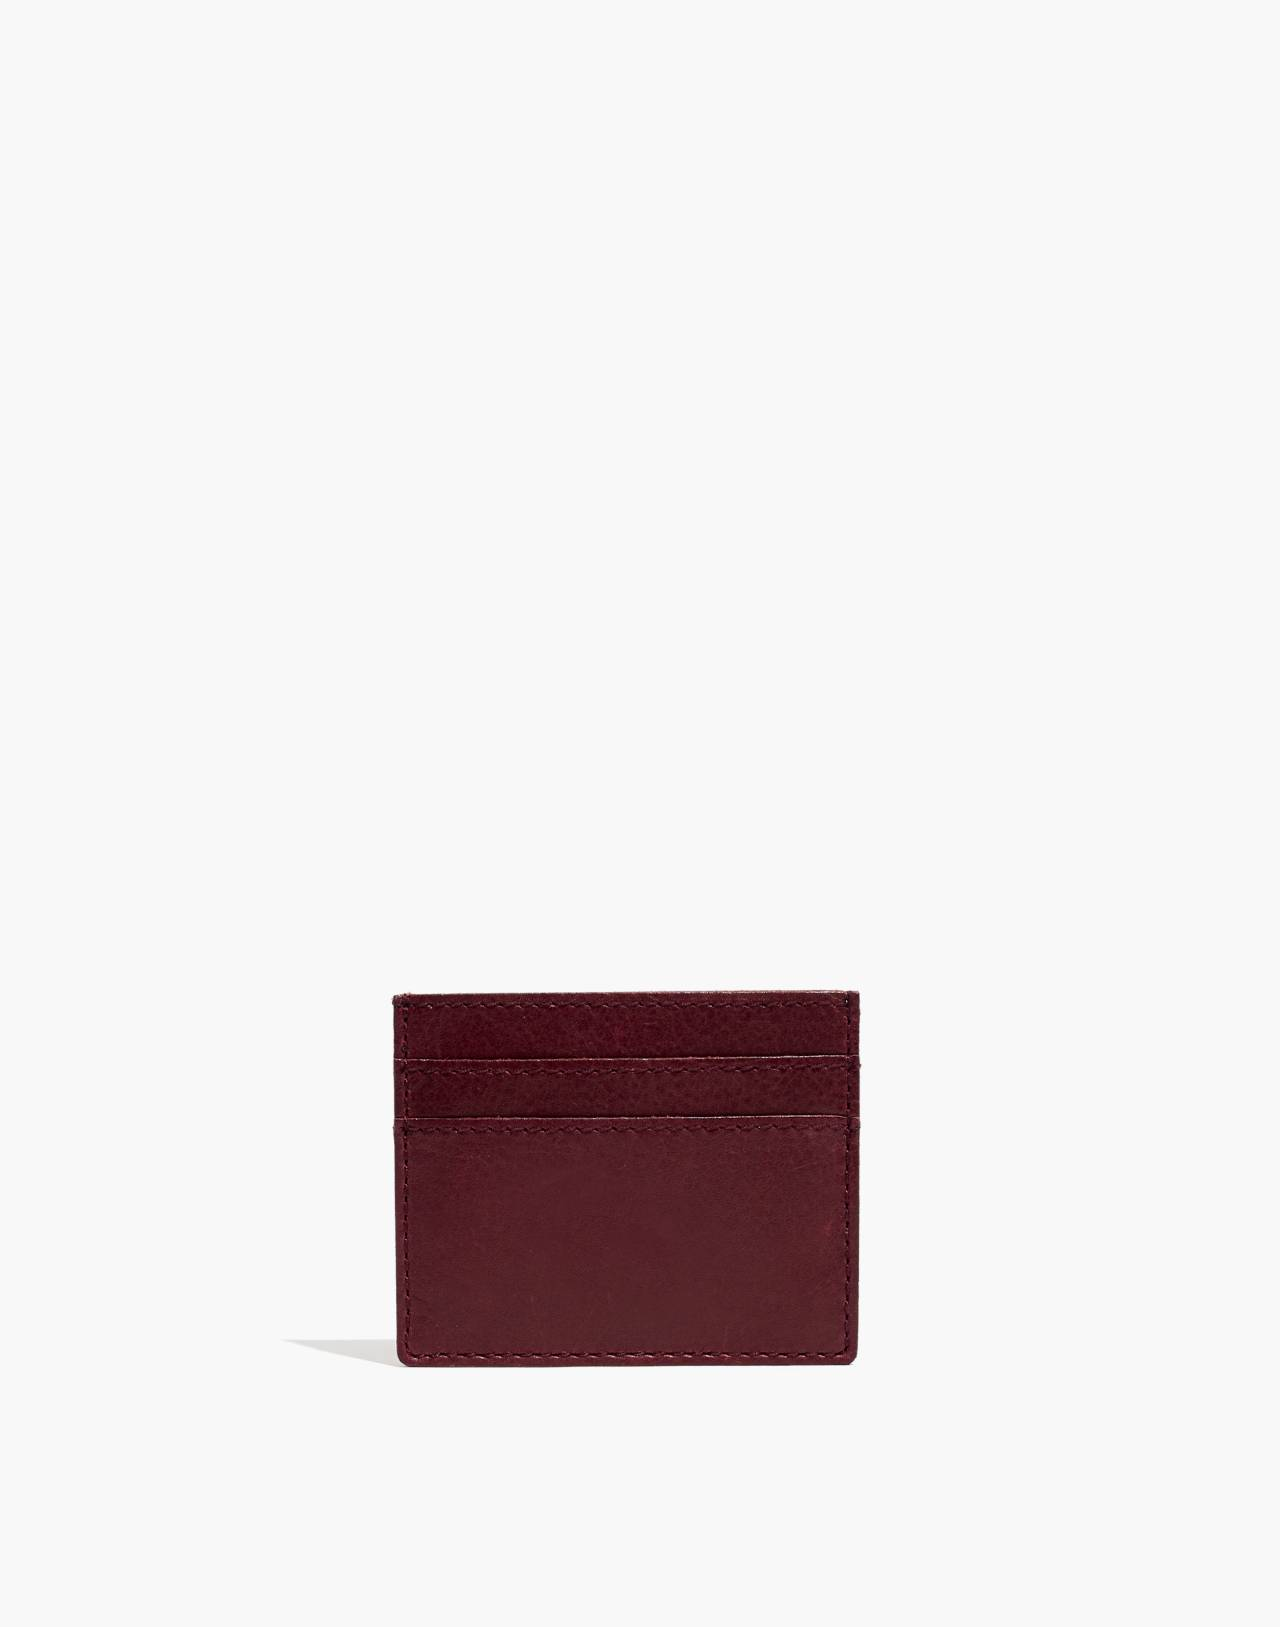 The Leather Card Case in dark cabernet image 1